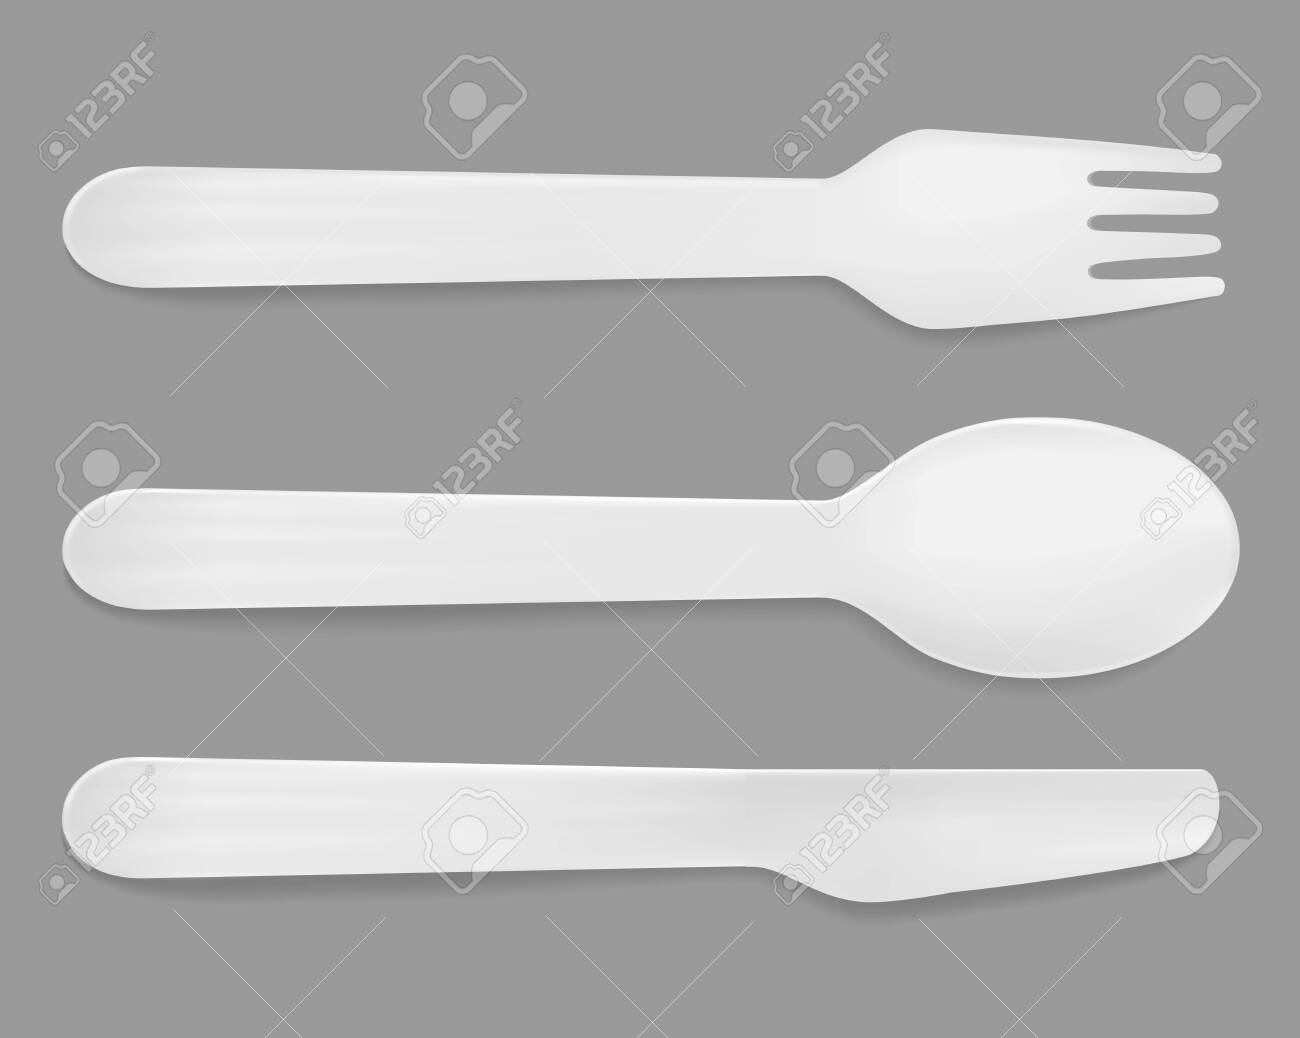 Disposable white plastic cutlery. Vector spoon, knife and fork. - 145109545